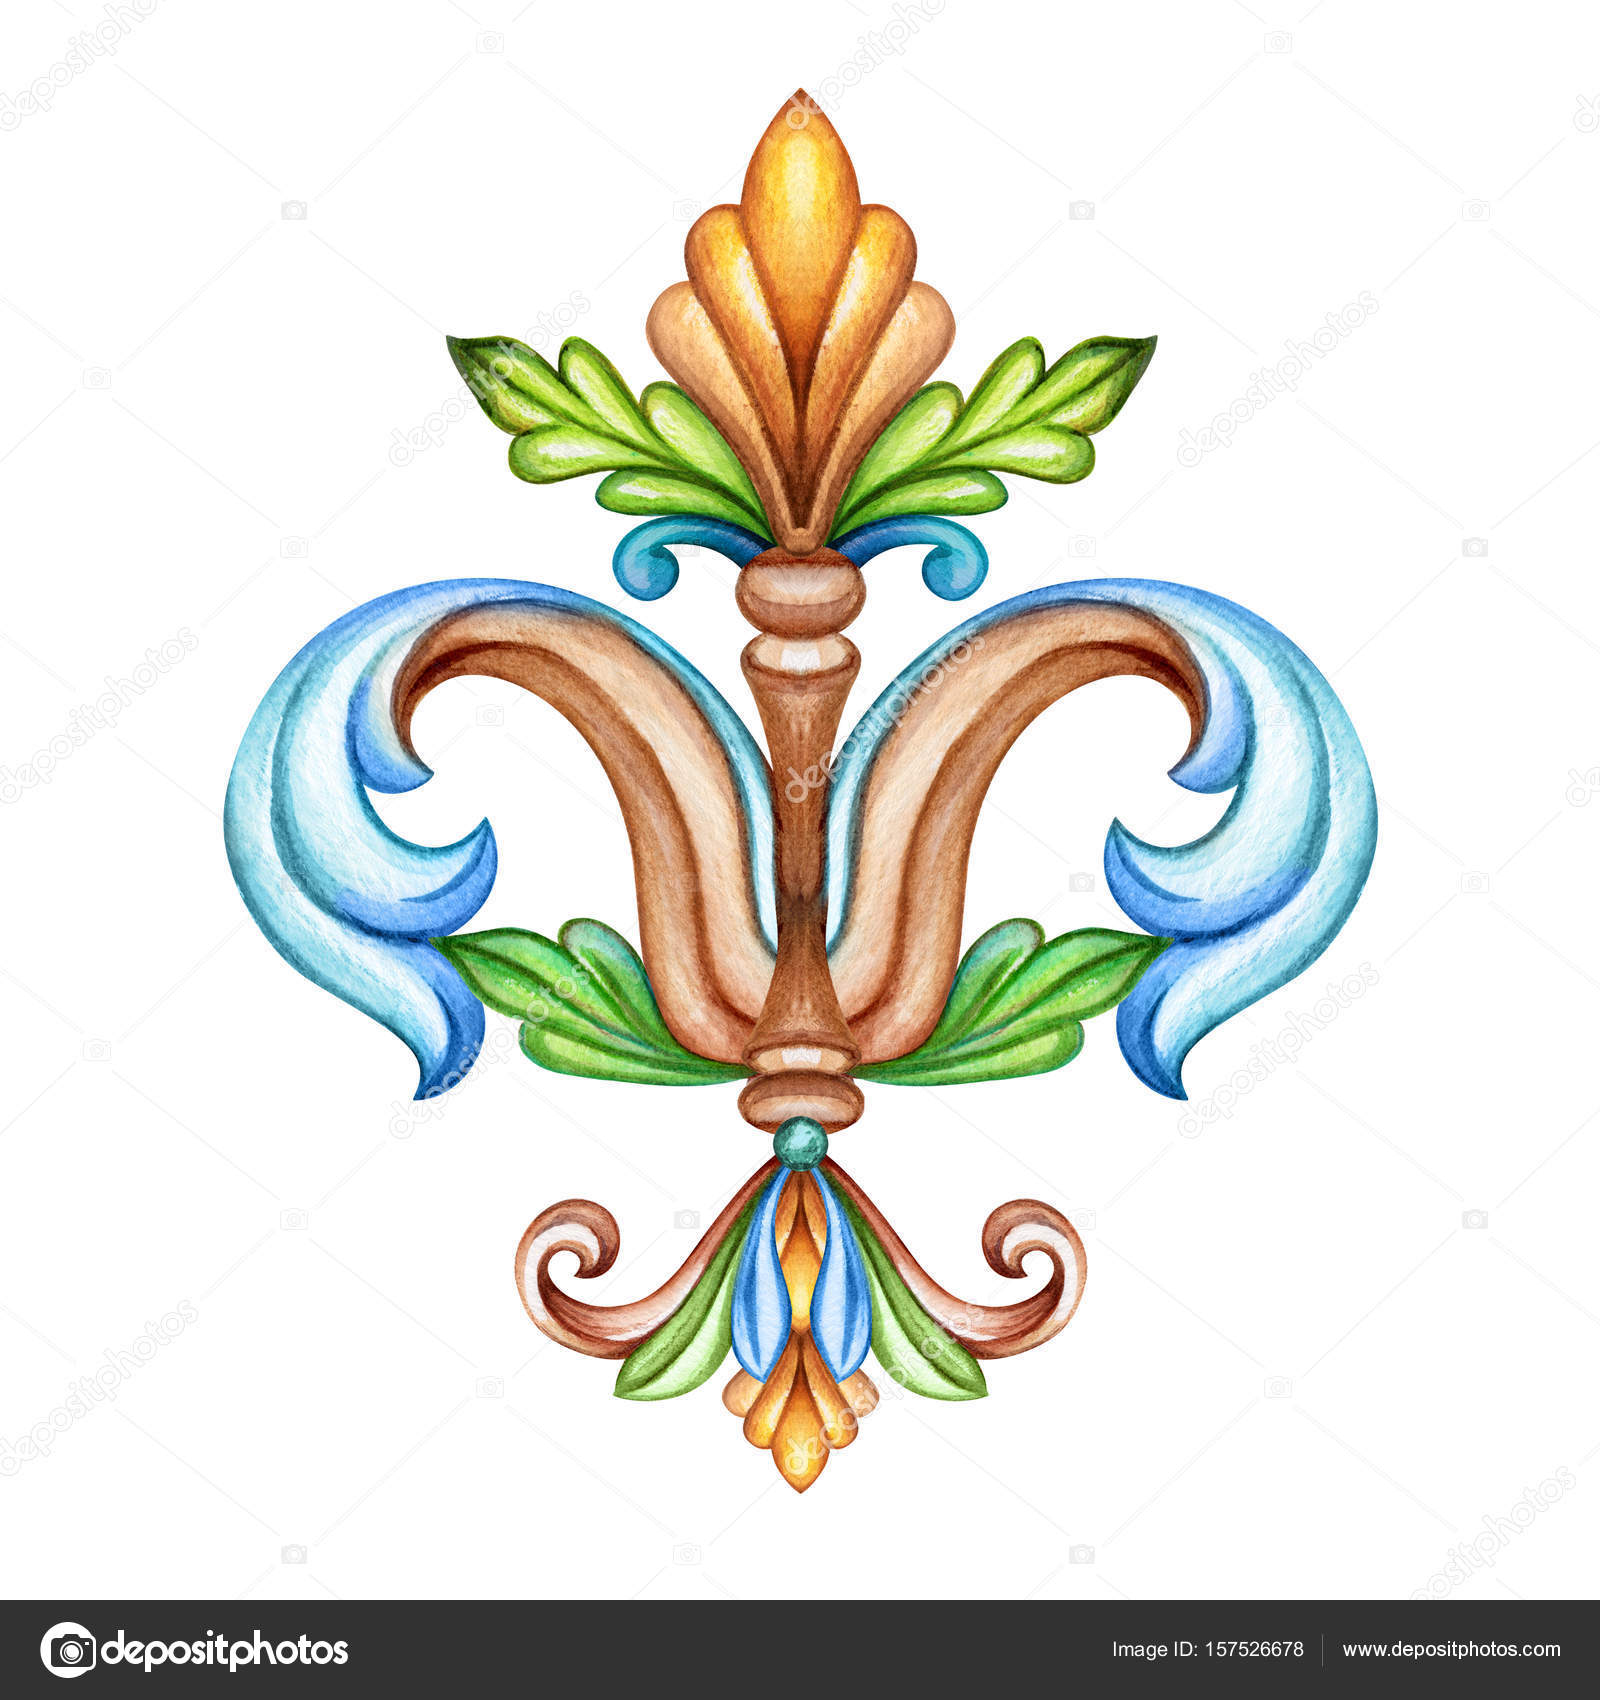 hight resolution of watercolor illustration fleur de lis acanthus decorative element vintage ornament clip art